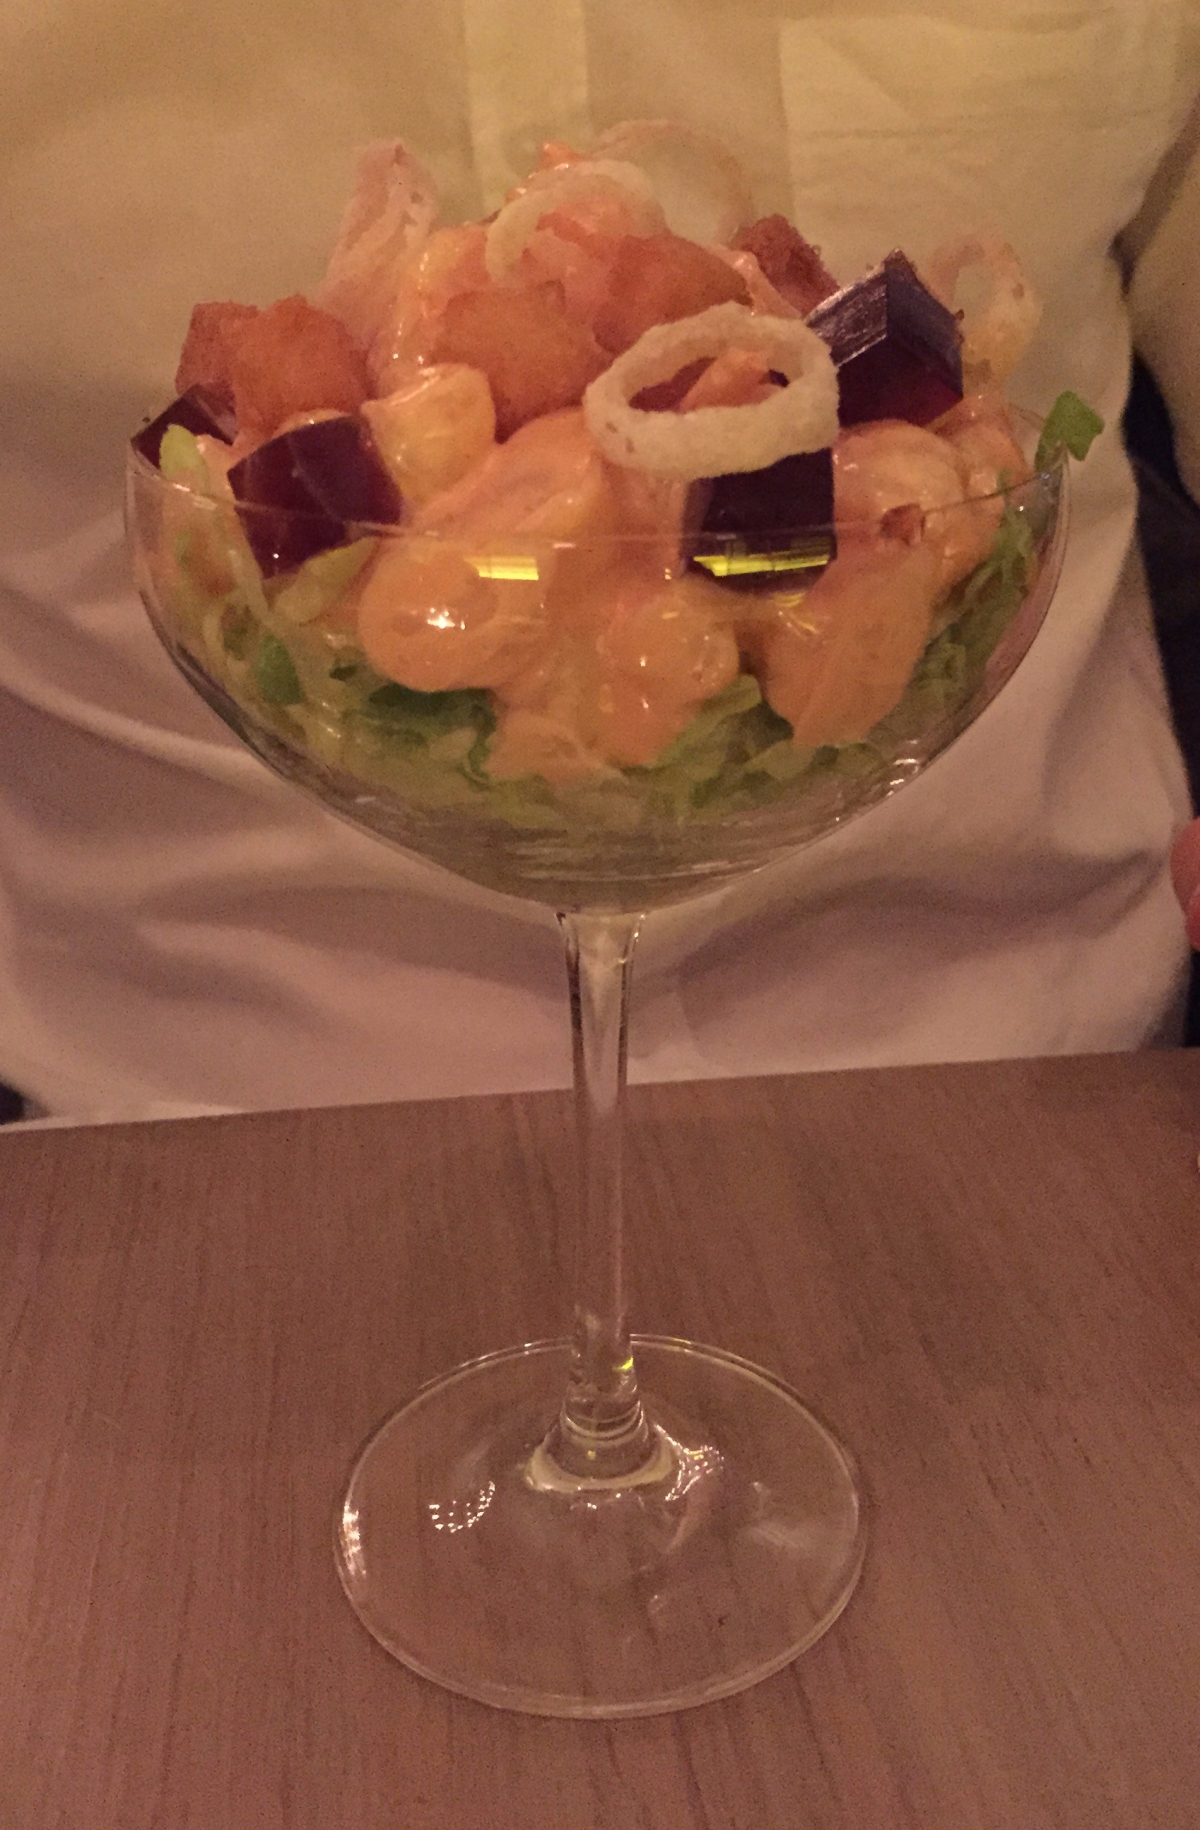 Prawn cocktail, lobster jelly, avocado, crisps shallotPrawn cocktail, lobster jelly, avocado, crisps shallot